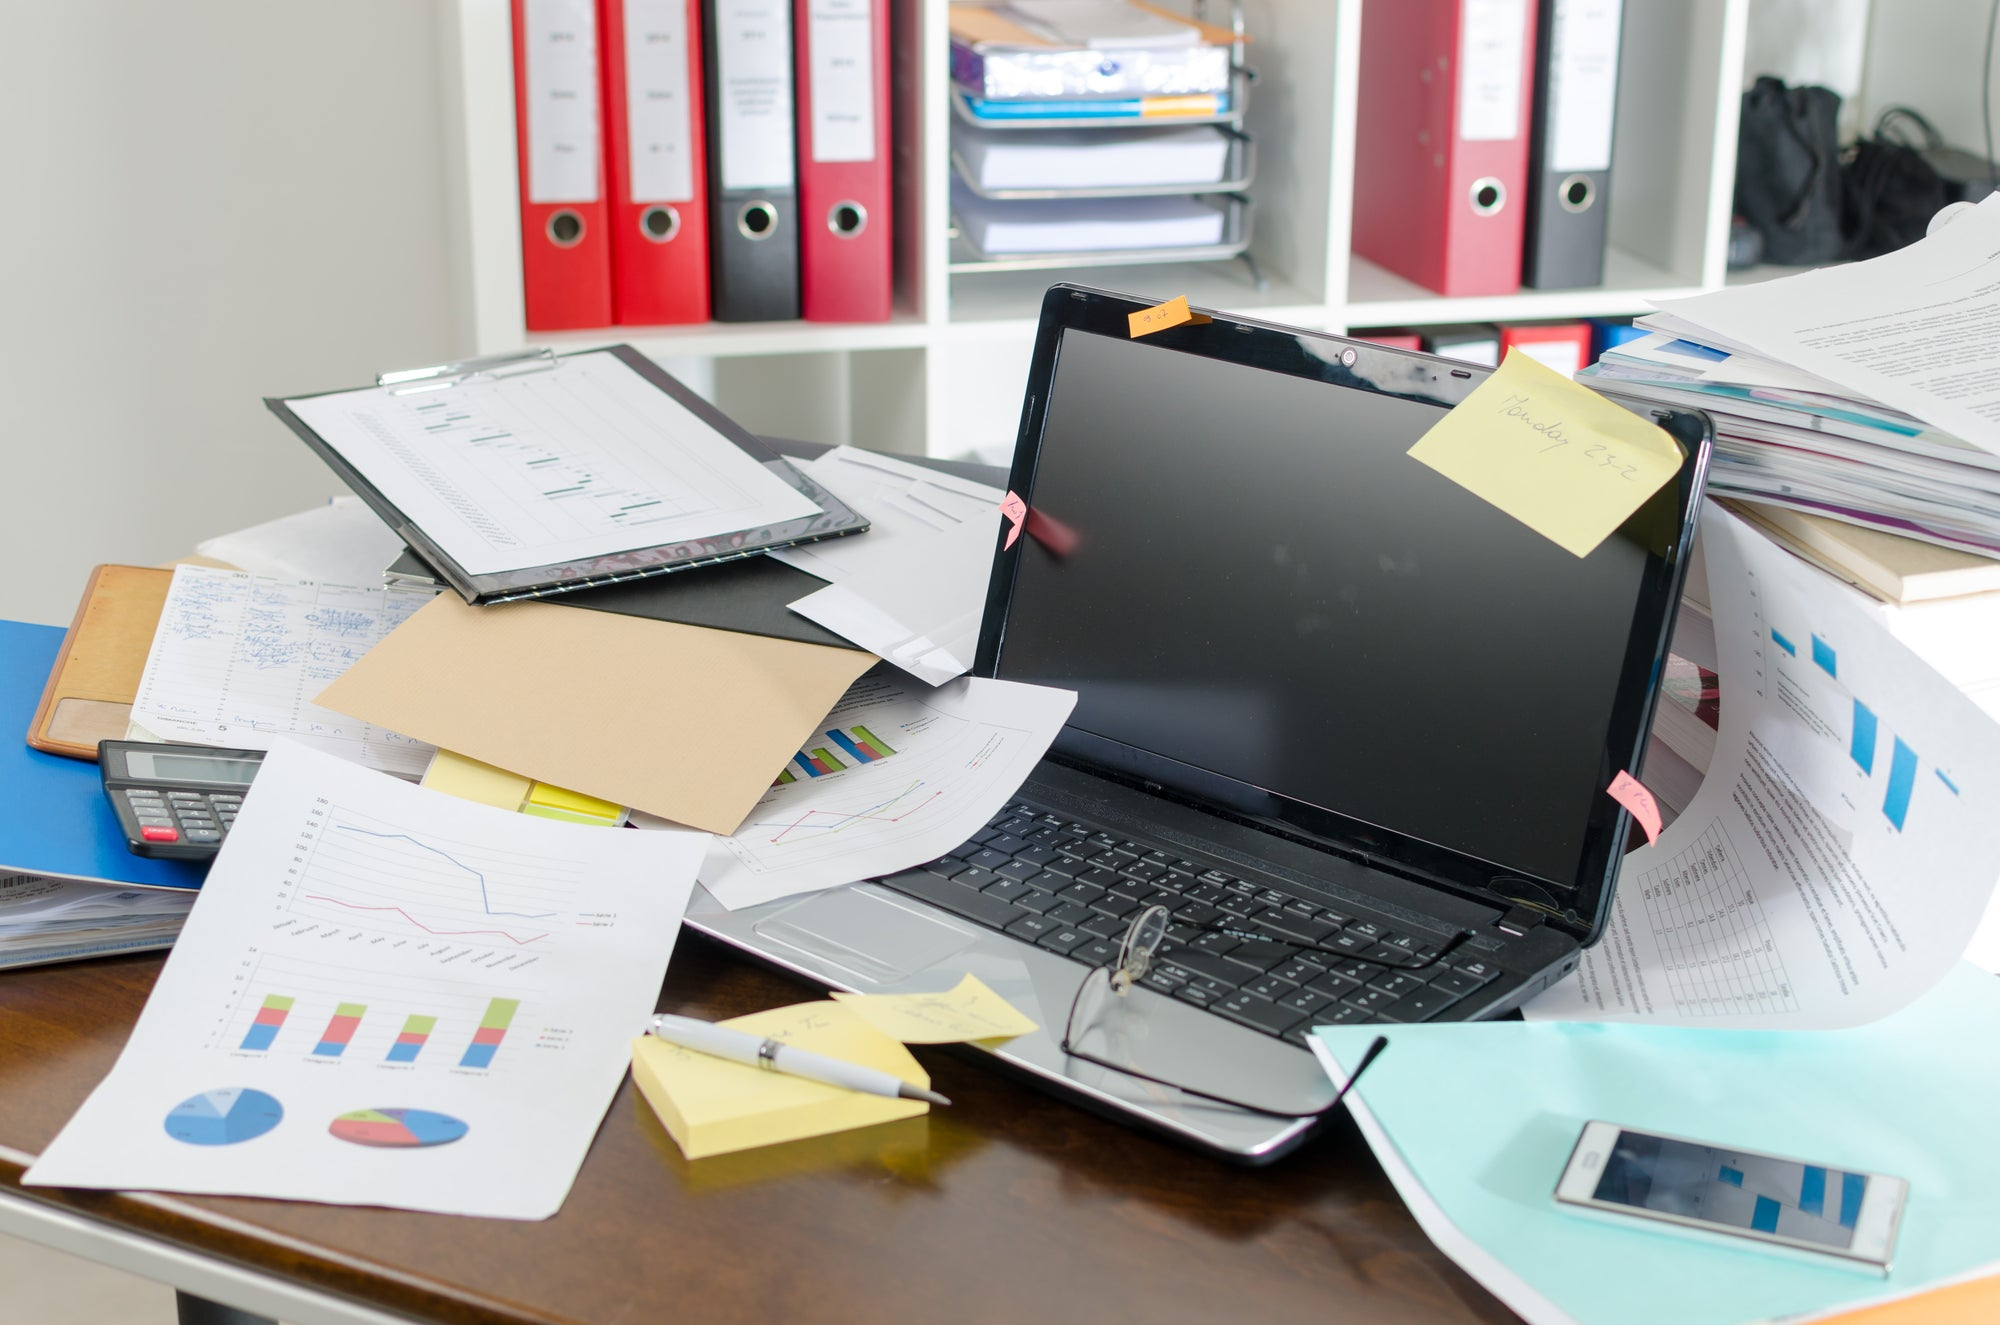 Clutter Free Workspace for Increased Productivity